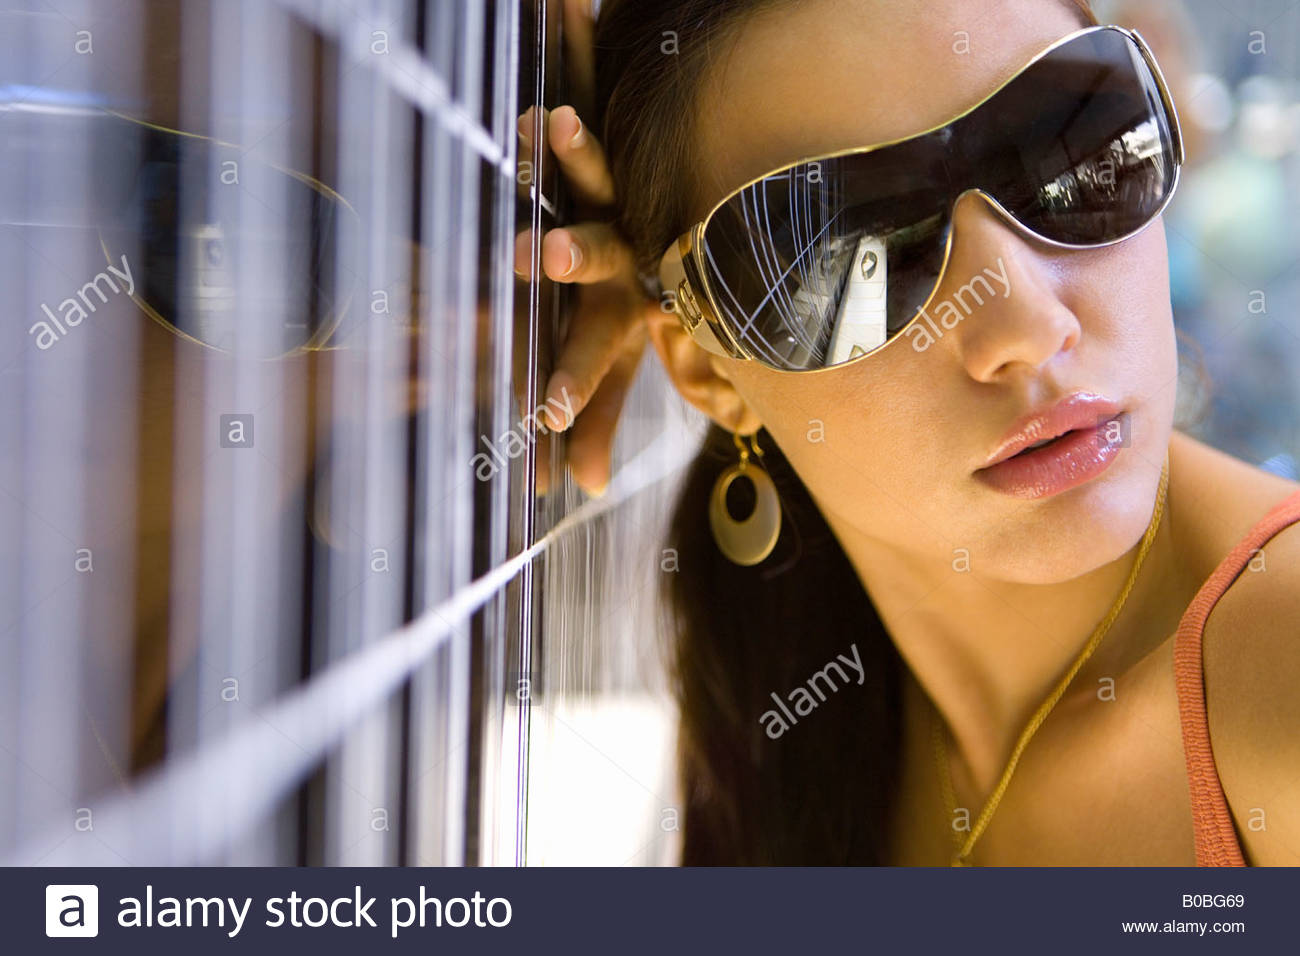 Young woman wearing sunglasses, leaning on wall, close-up - Stock Image